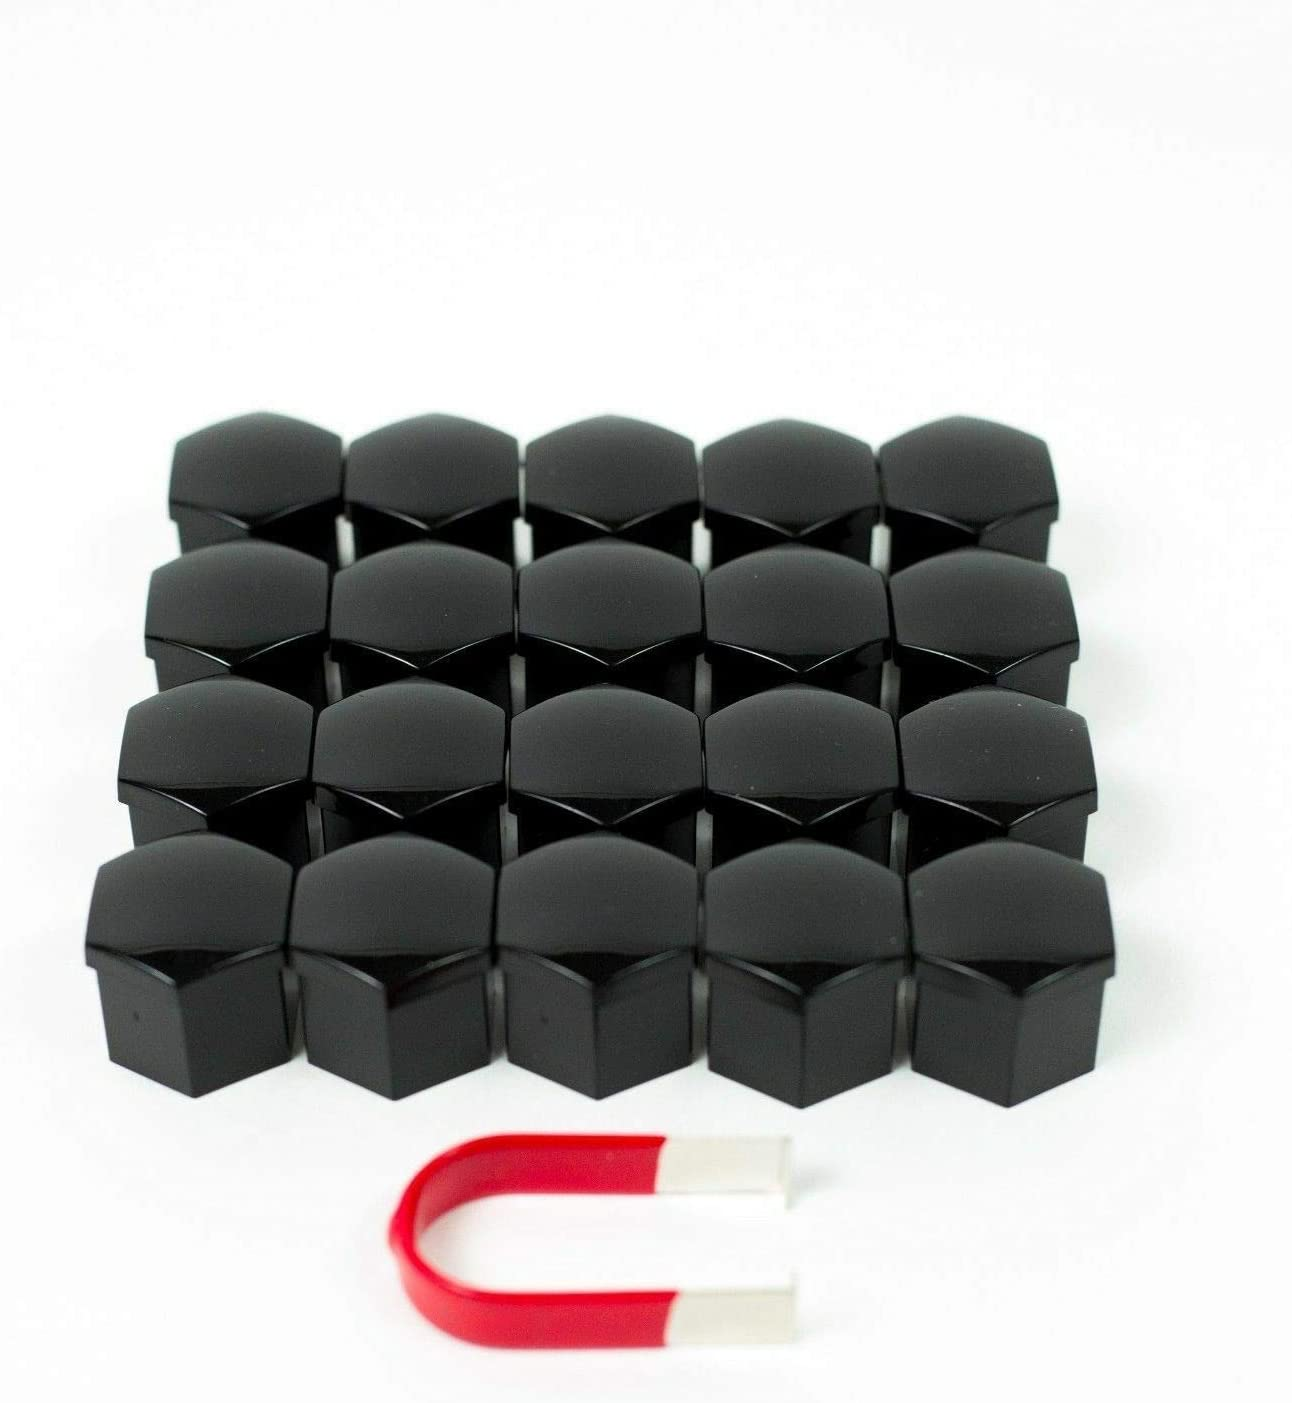 VLUXAUTO - for Cayman and Covers Wheel 911 online Special sale item shopping Nut Lug